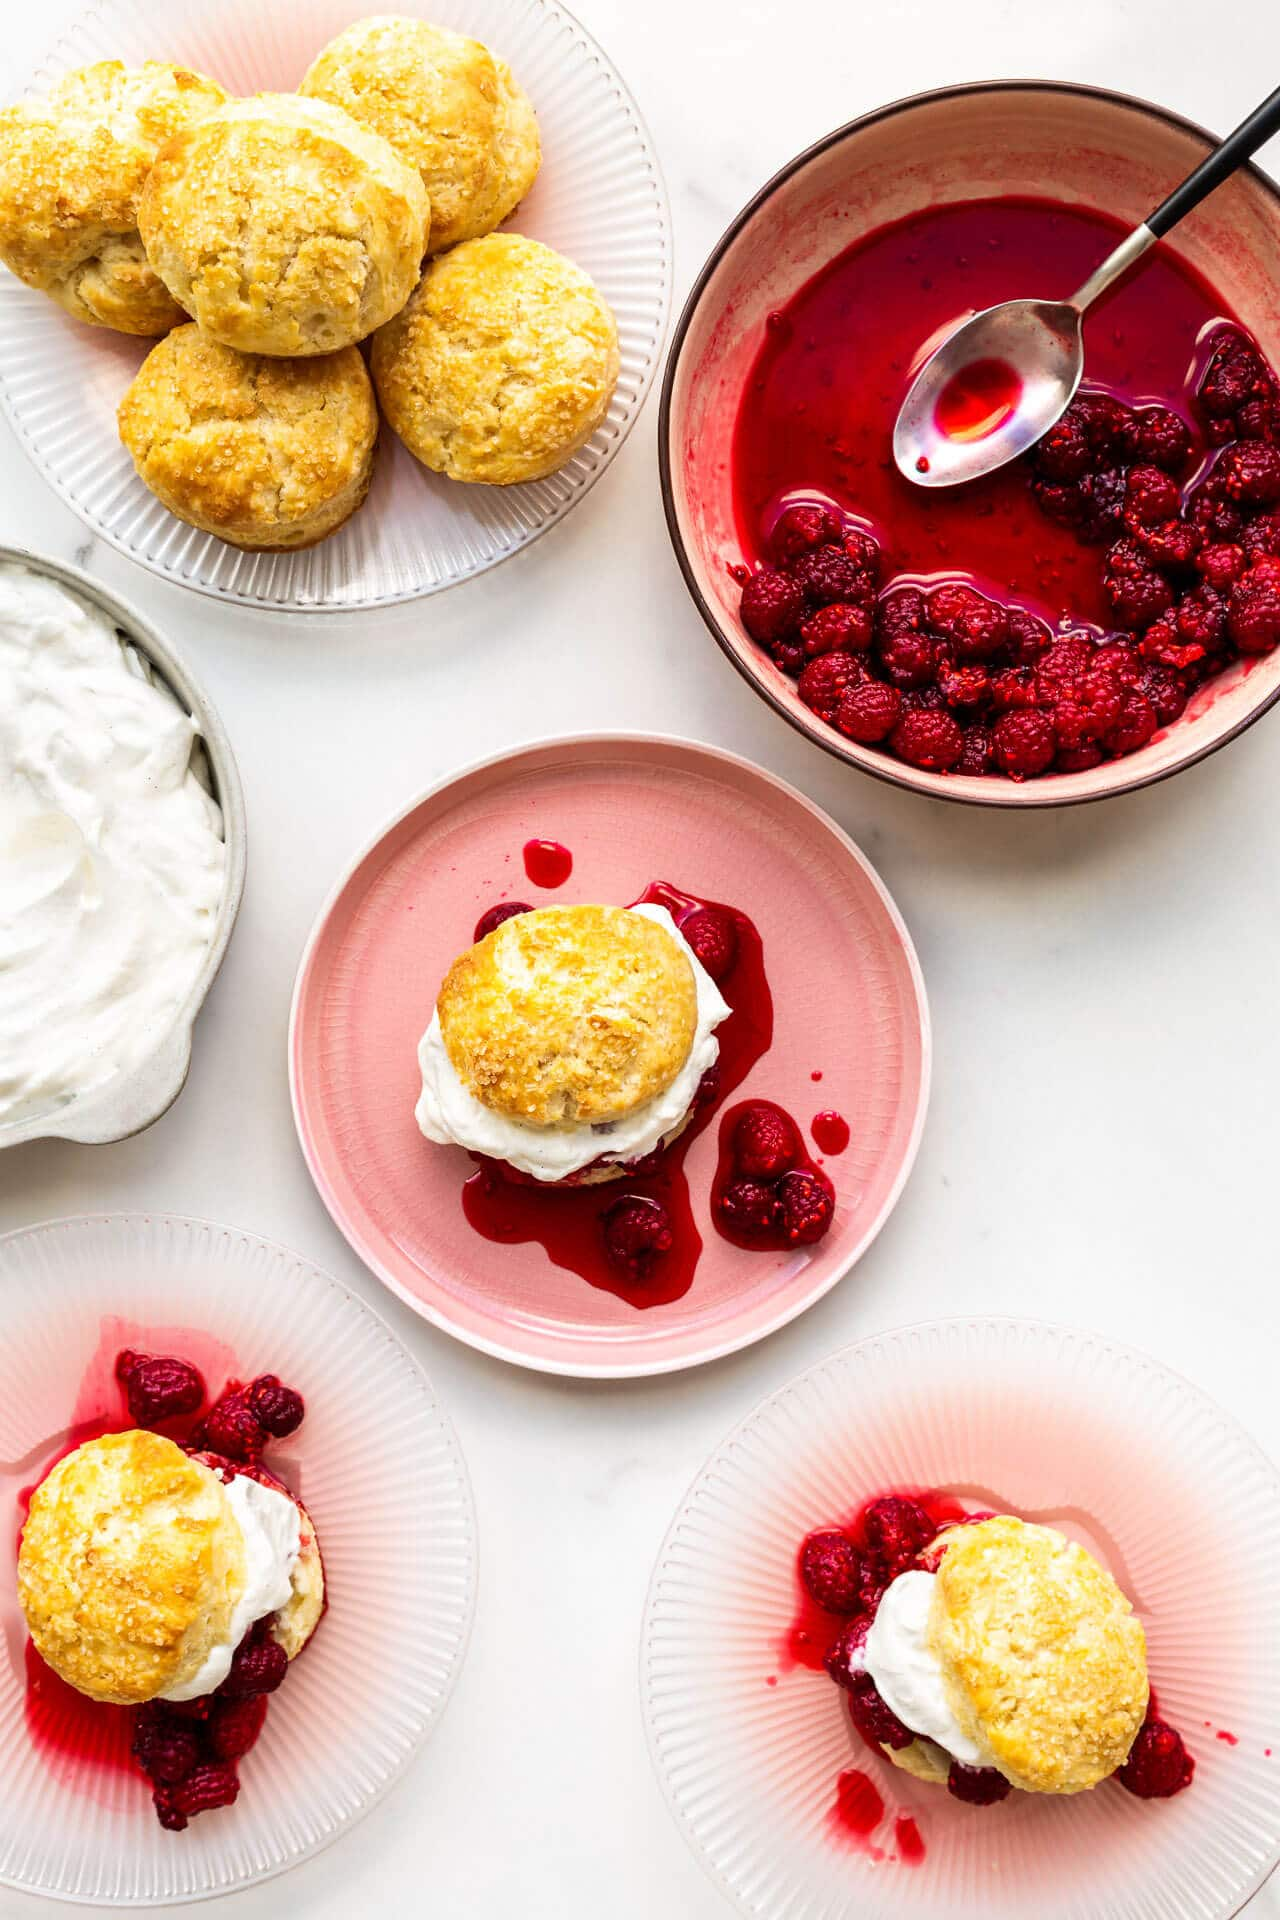 Assembling raspberry shortcakes with biscuits, macerated berries, and whipped cream